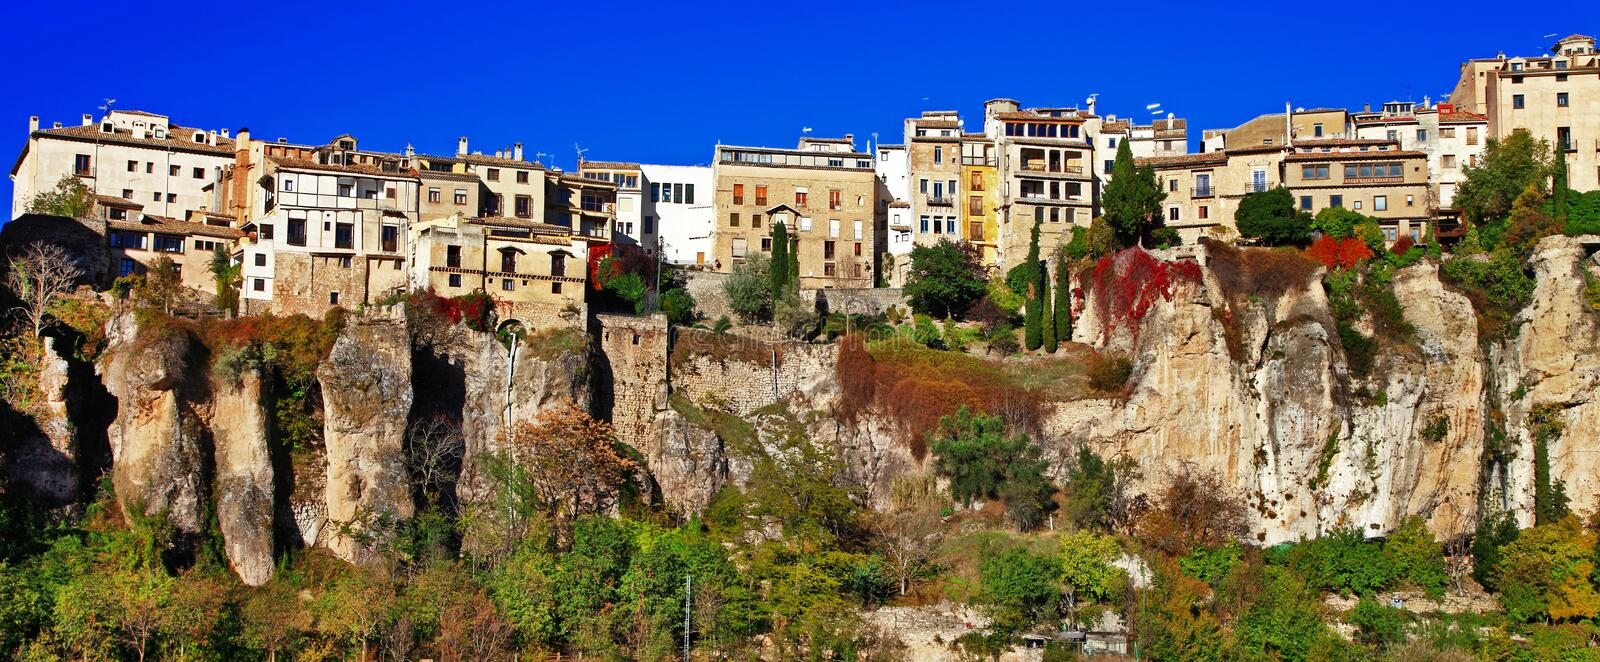 Cuenca. town on clifs. Spain royalty free stock image